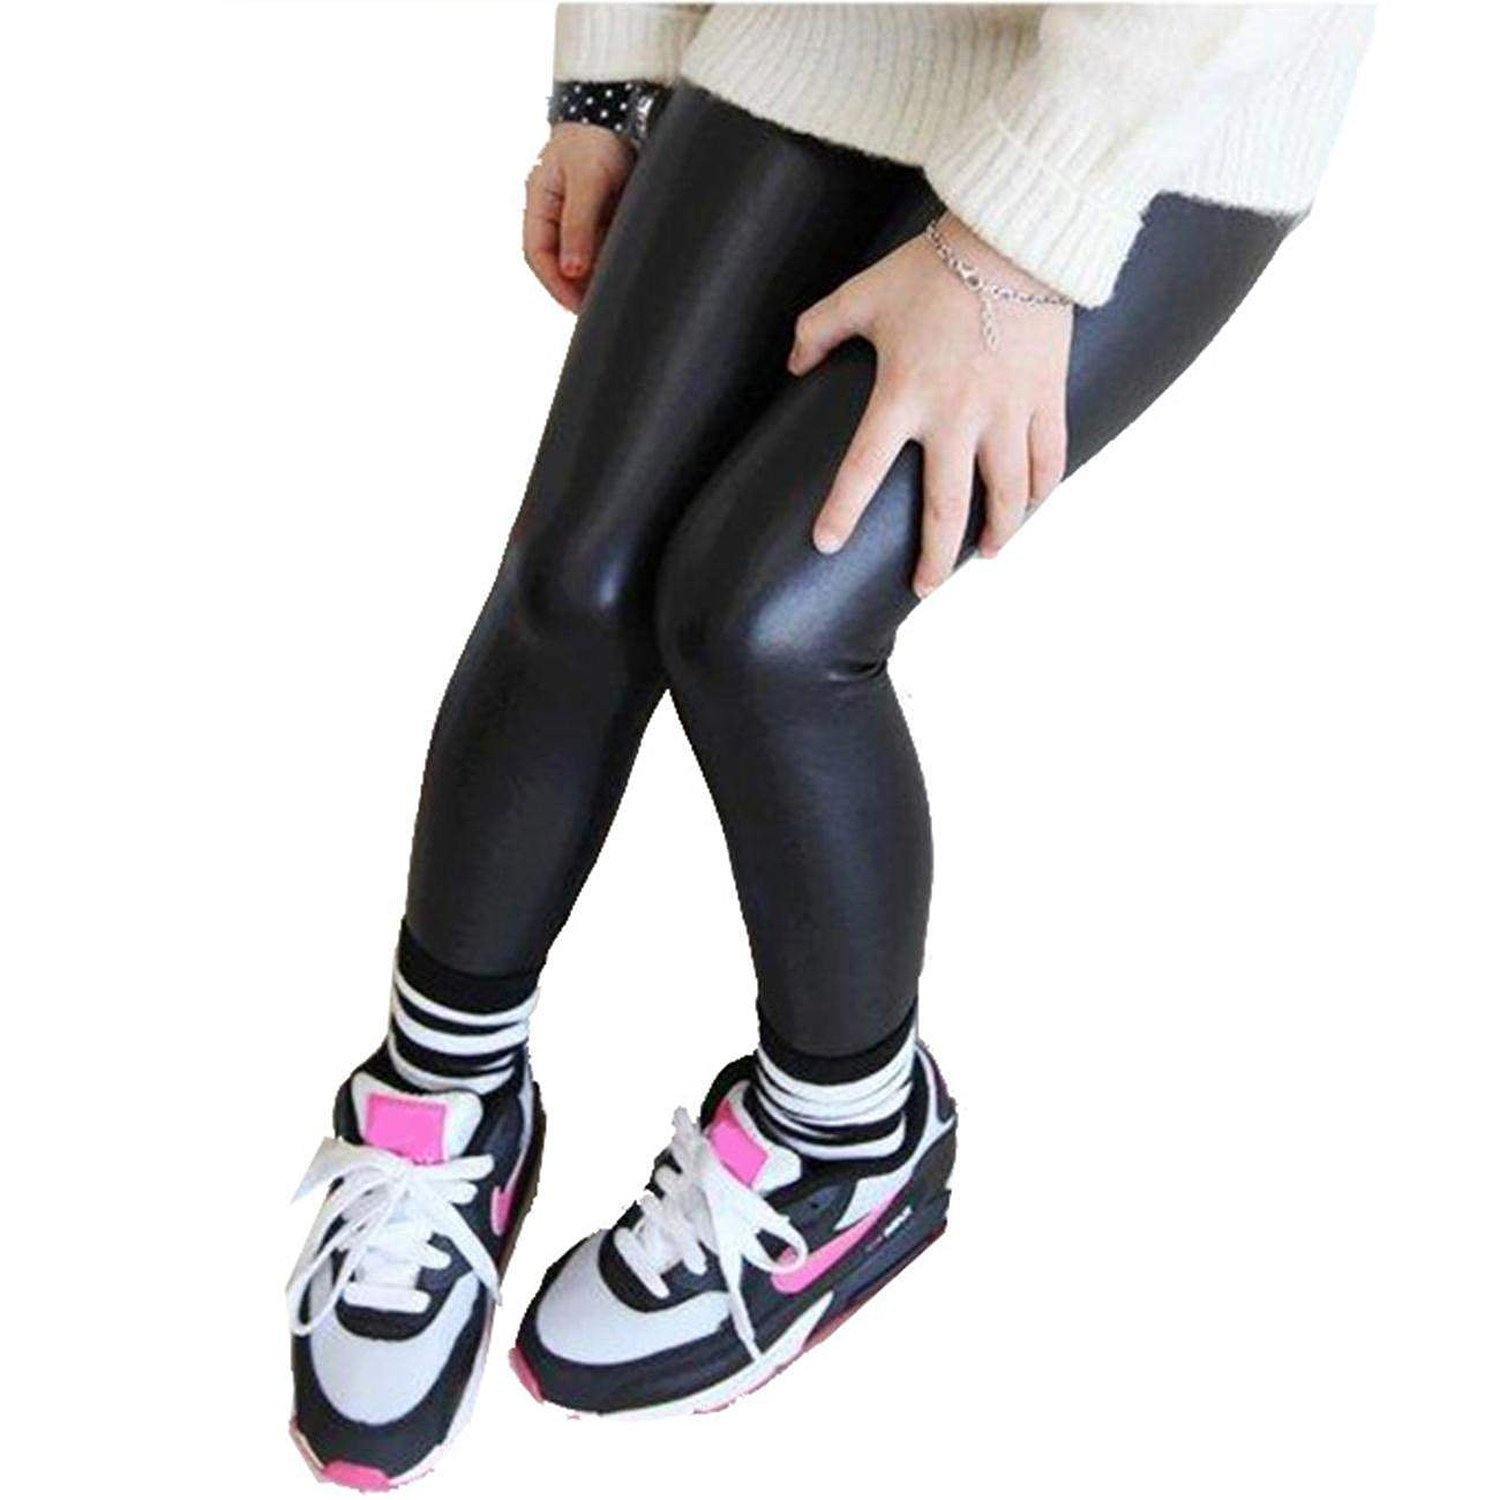 6422d0bc63f64 Get Quotations · Kids Little Girls Black Stretchy Pants Faux Leather Skinny Leggings  Trousers